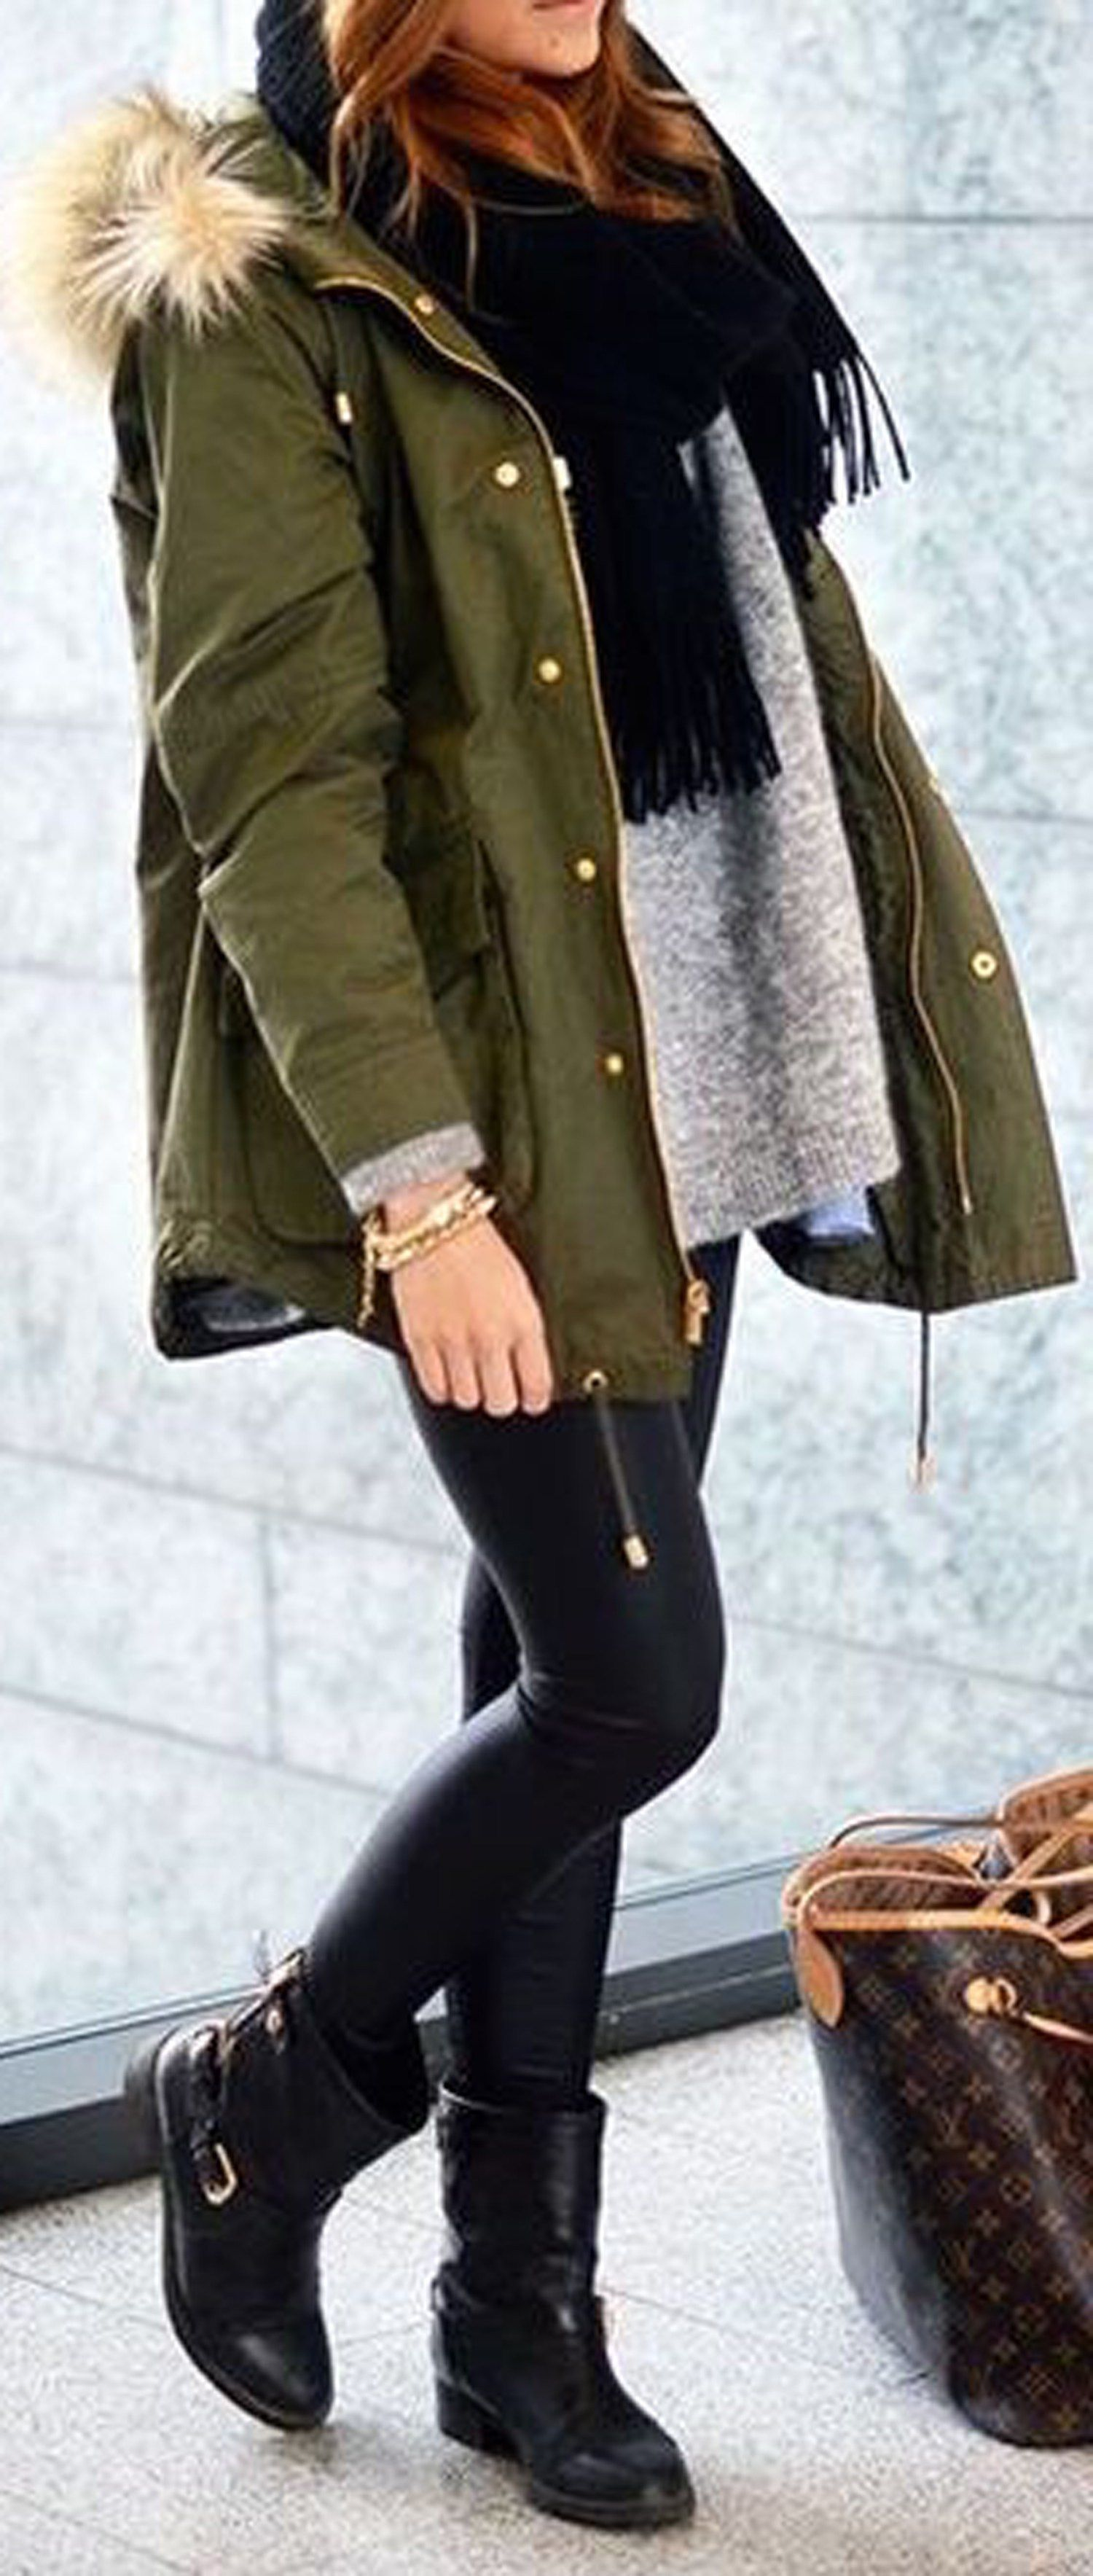 Cute comfy winter outfits ideas for school for teen girls for